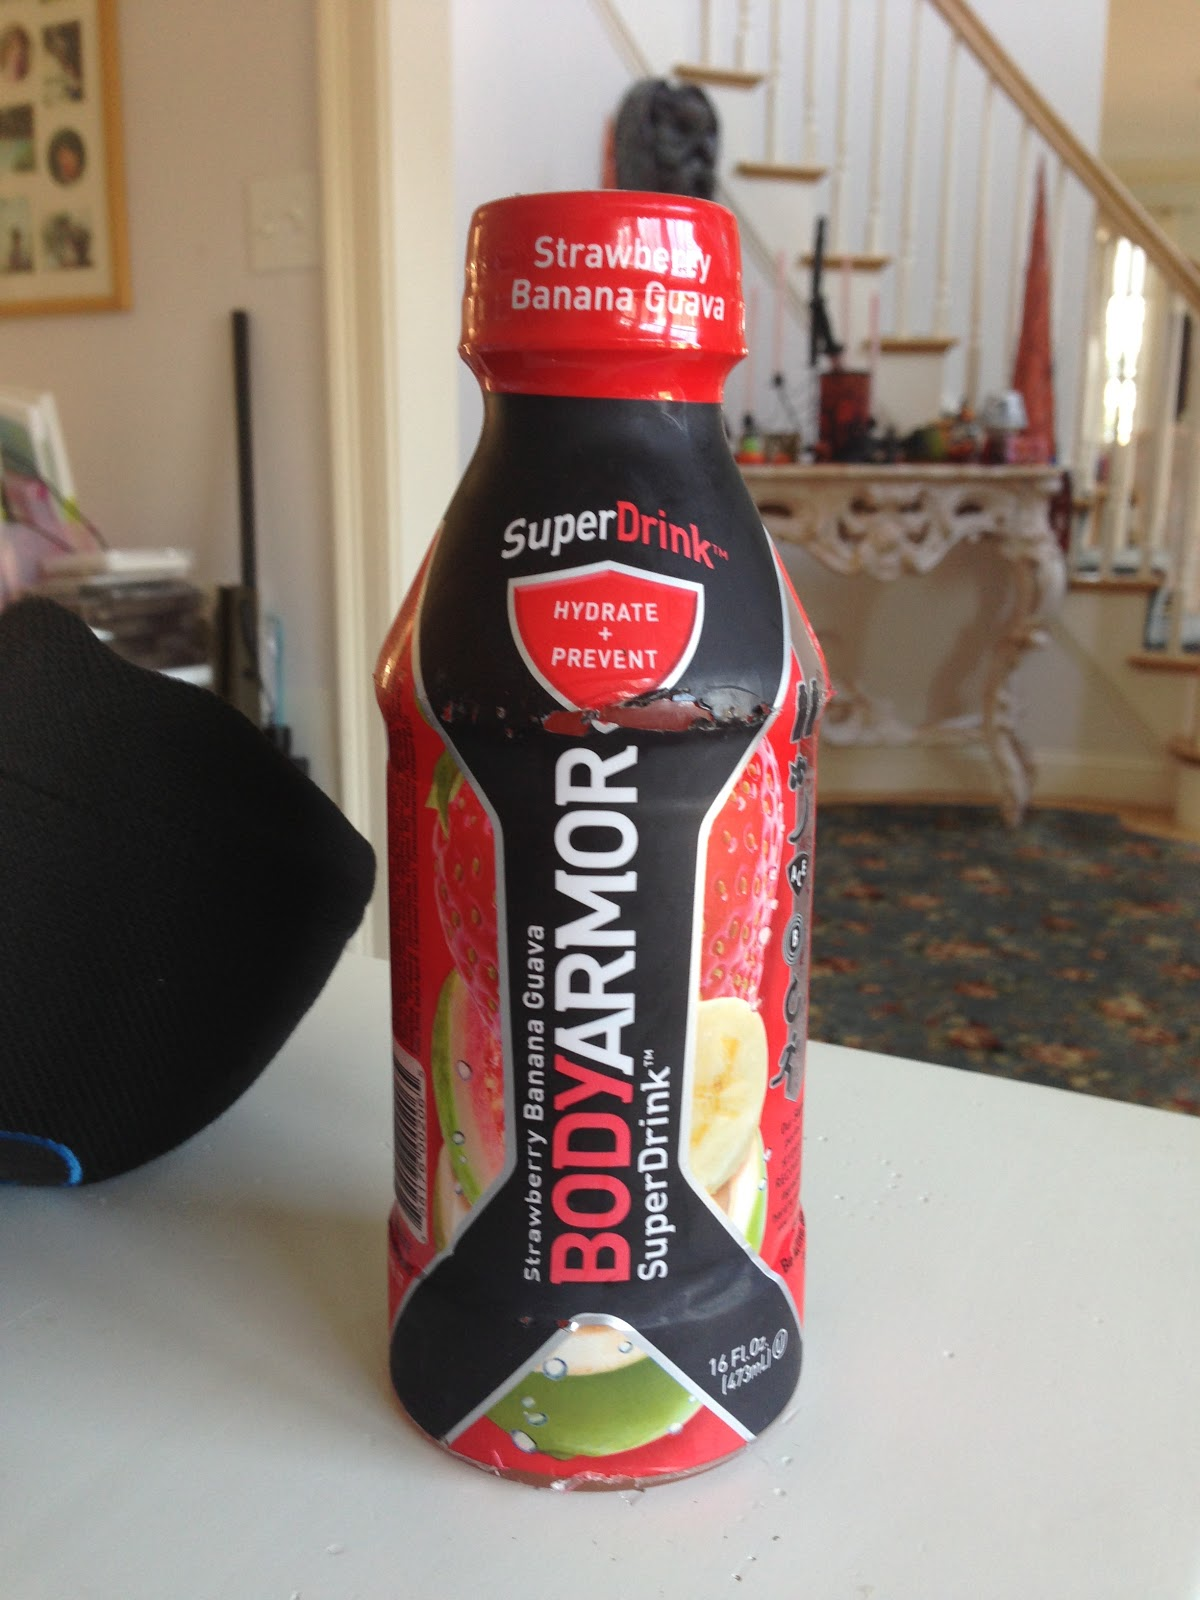 soder reviews body armor strawberry banana guava